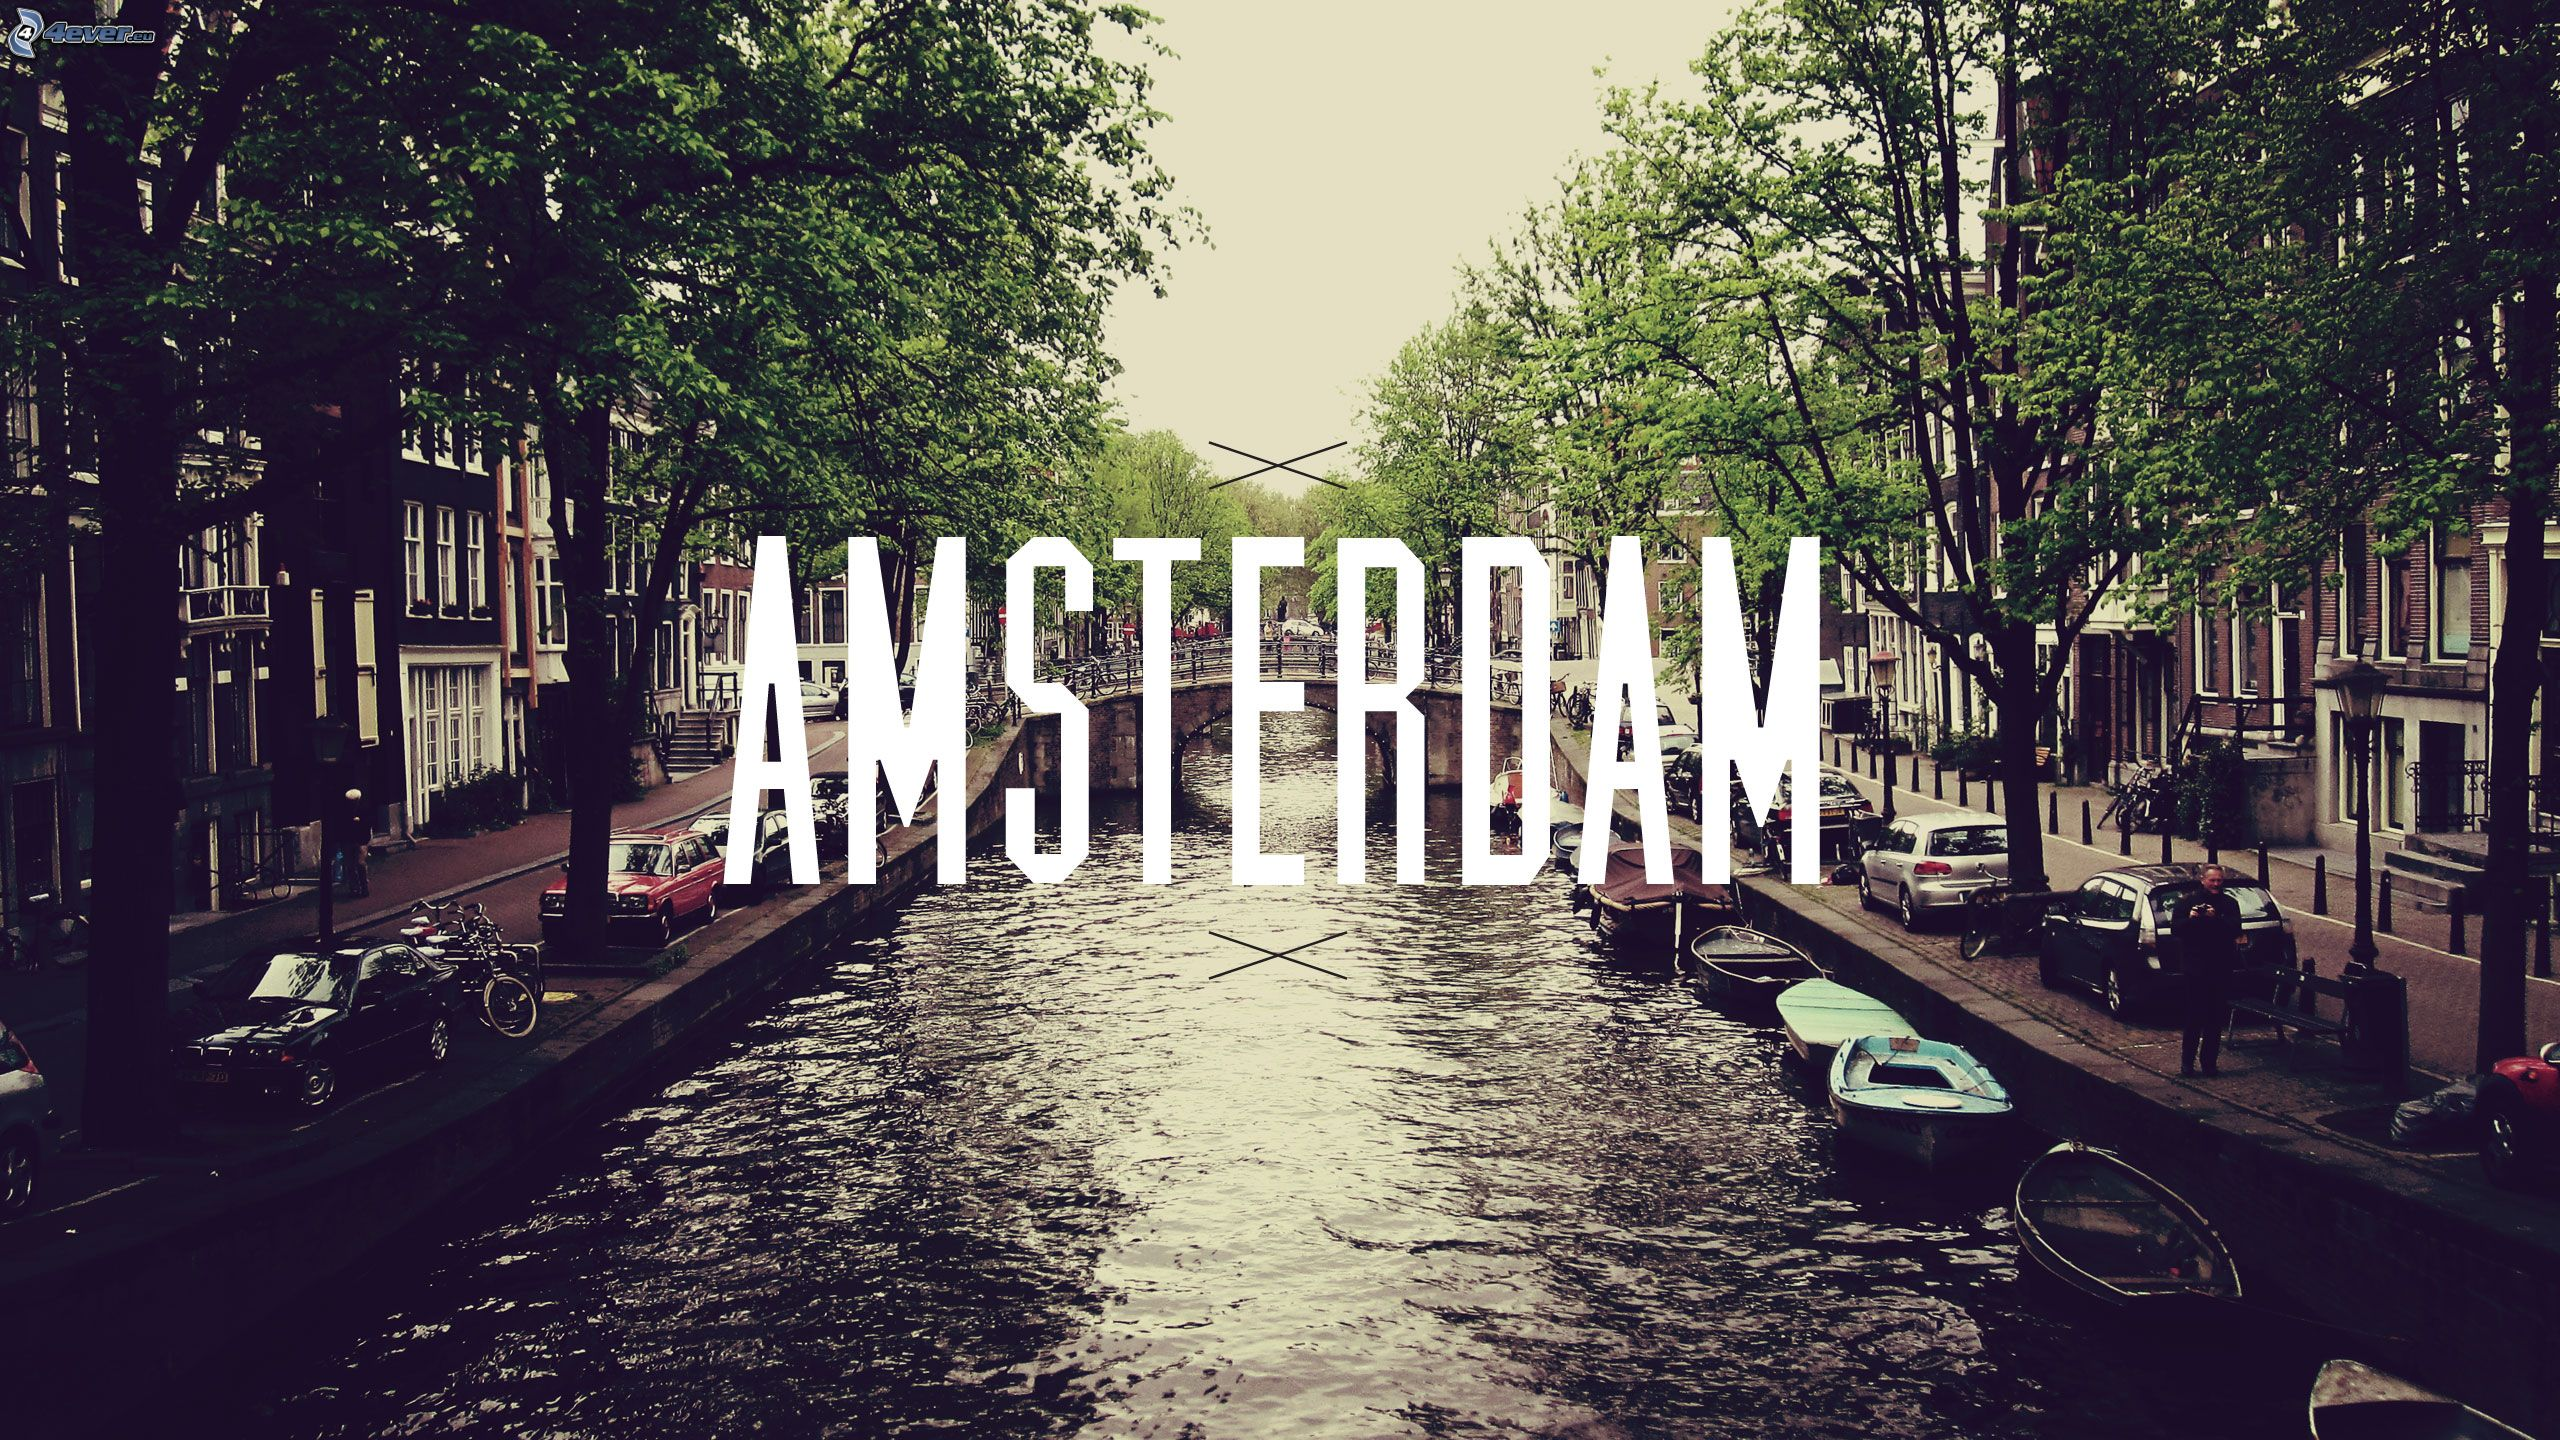 Amsterdam Quotes Entrancing Amsterdam Quotes Simple Amsterdam Quotes Pictures Images